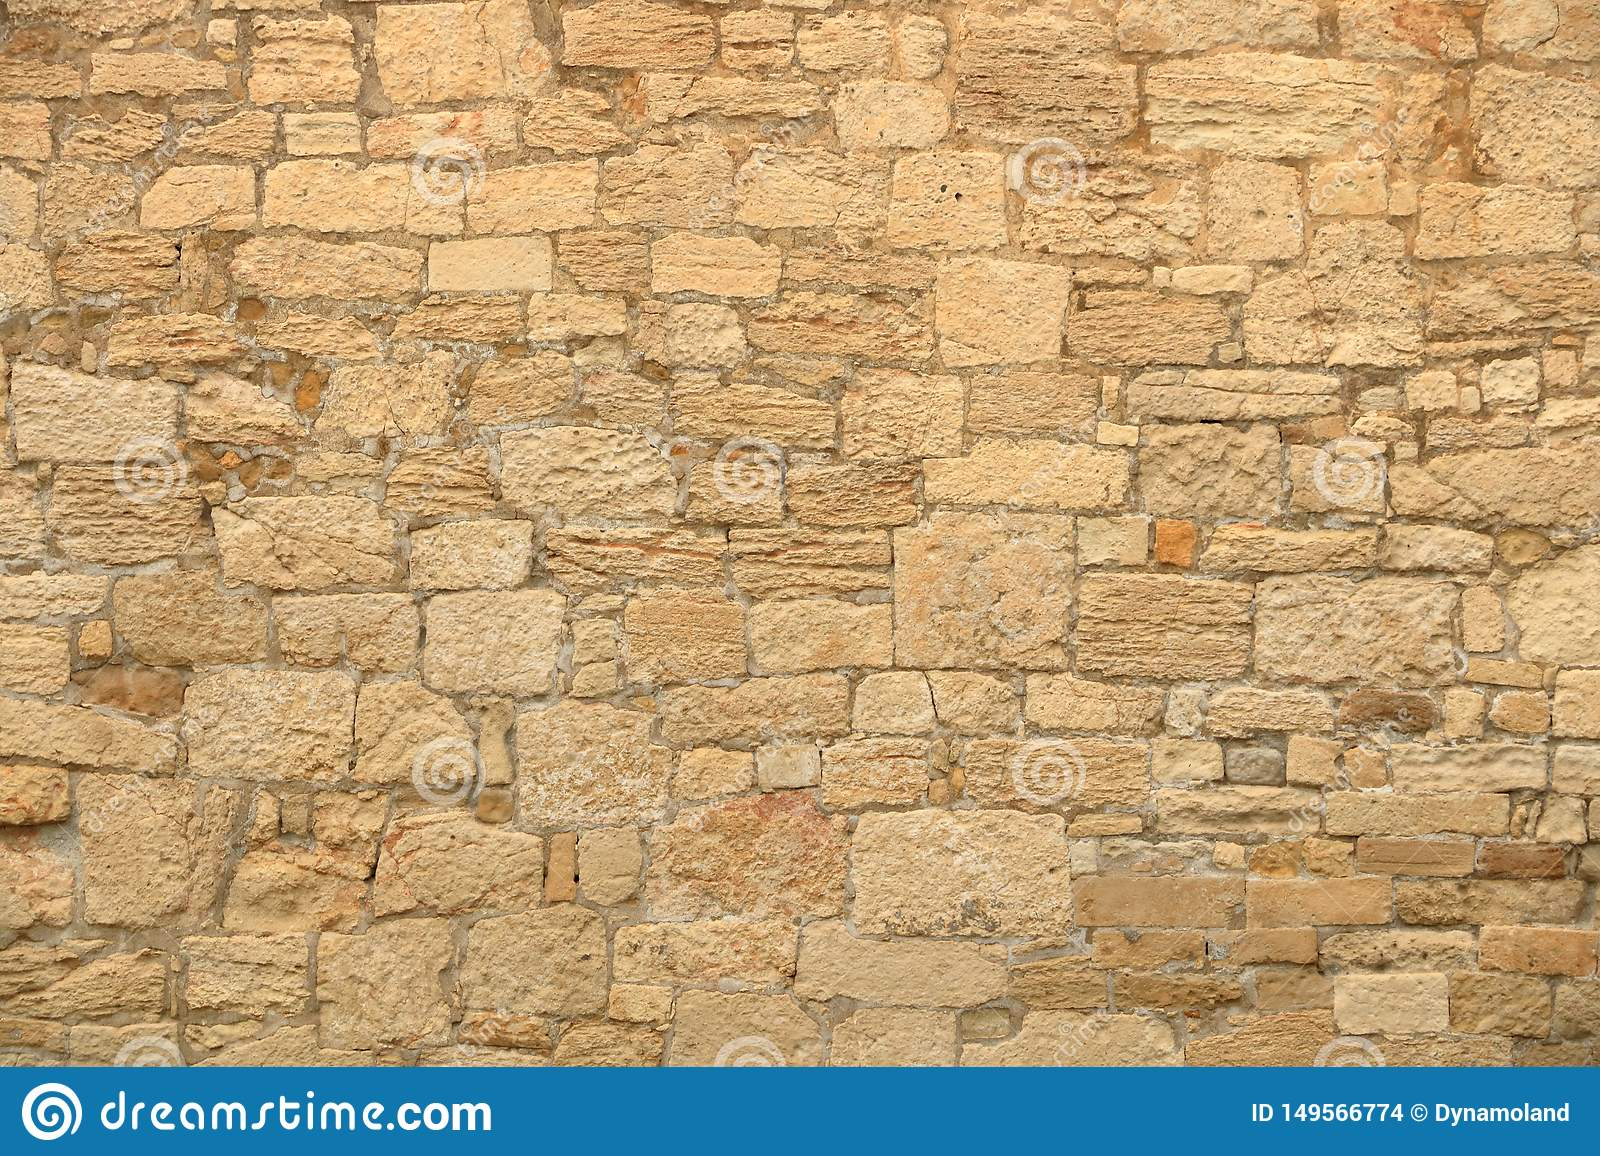 Big yellow wall from stone bricks